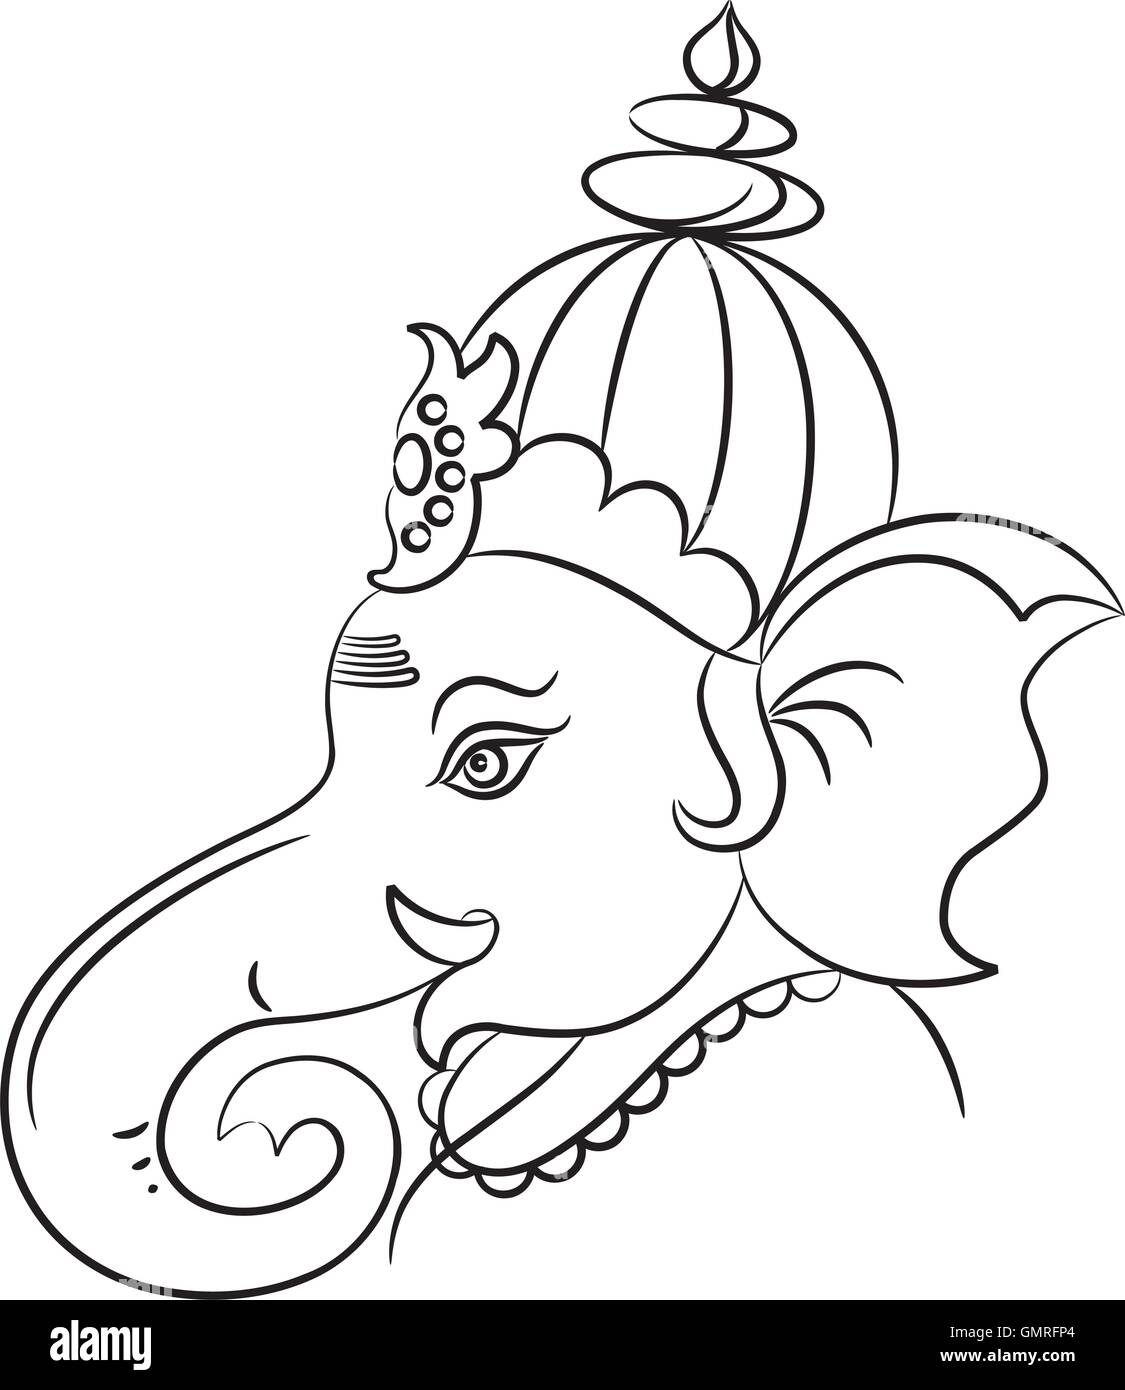 Ganesha the lord of wisdom stock image